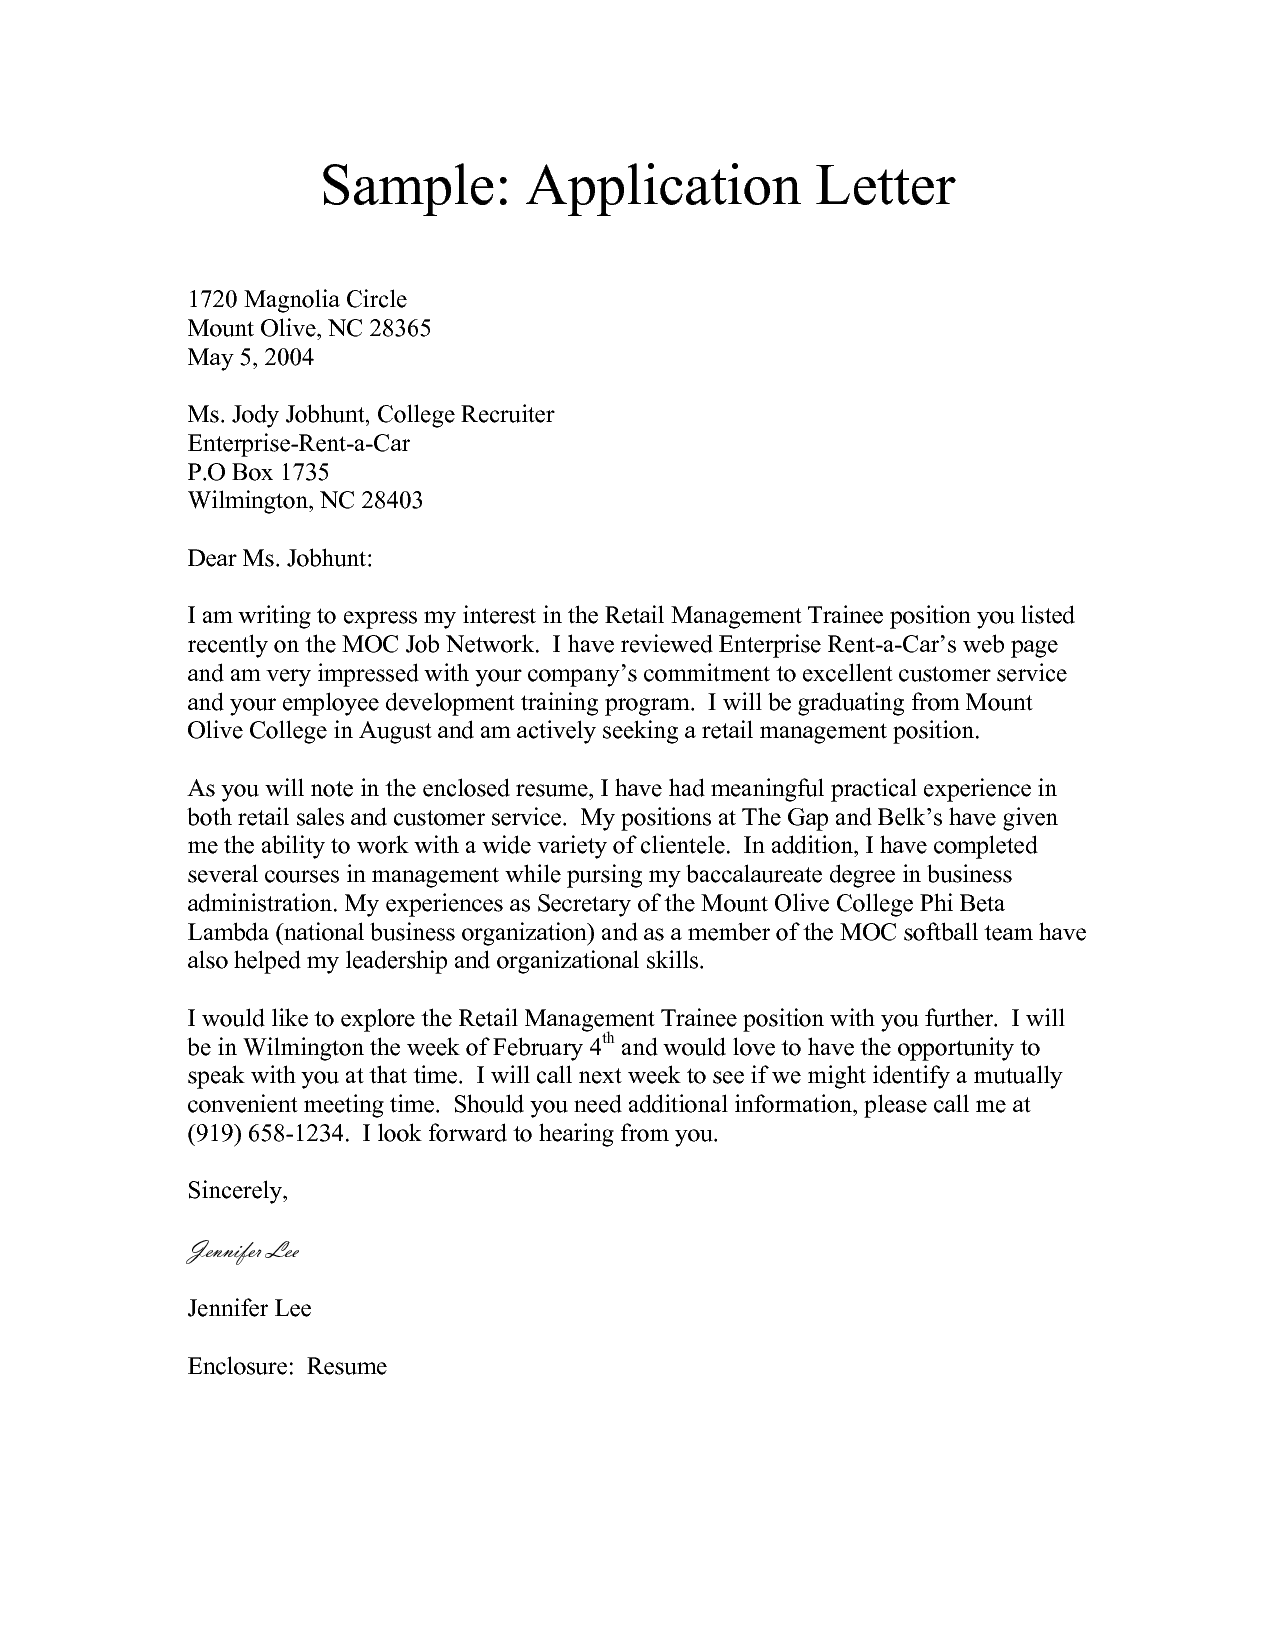 Trouble writing your application letter use these letters for purchase request letter formal business report template doc sample order application best free home design idea inspiration madrichimfo Choice Image